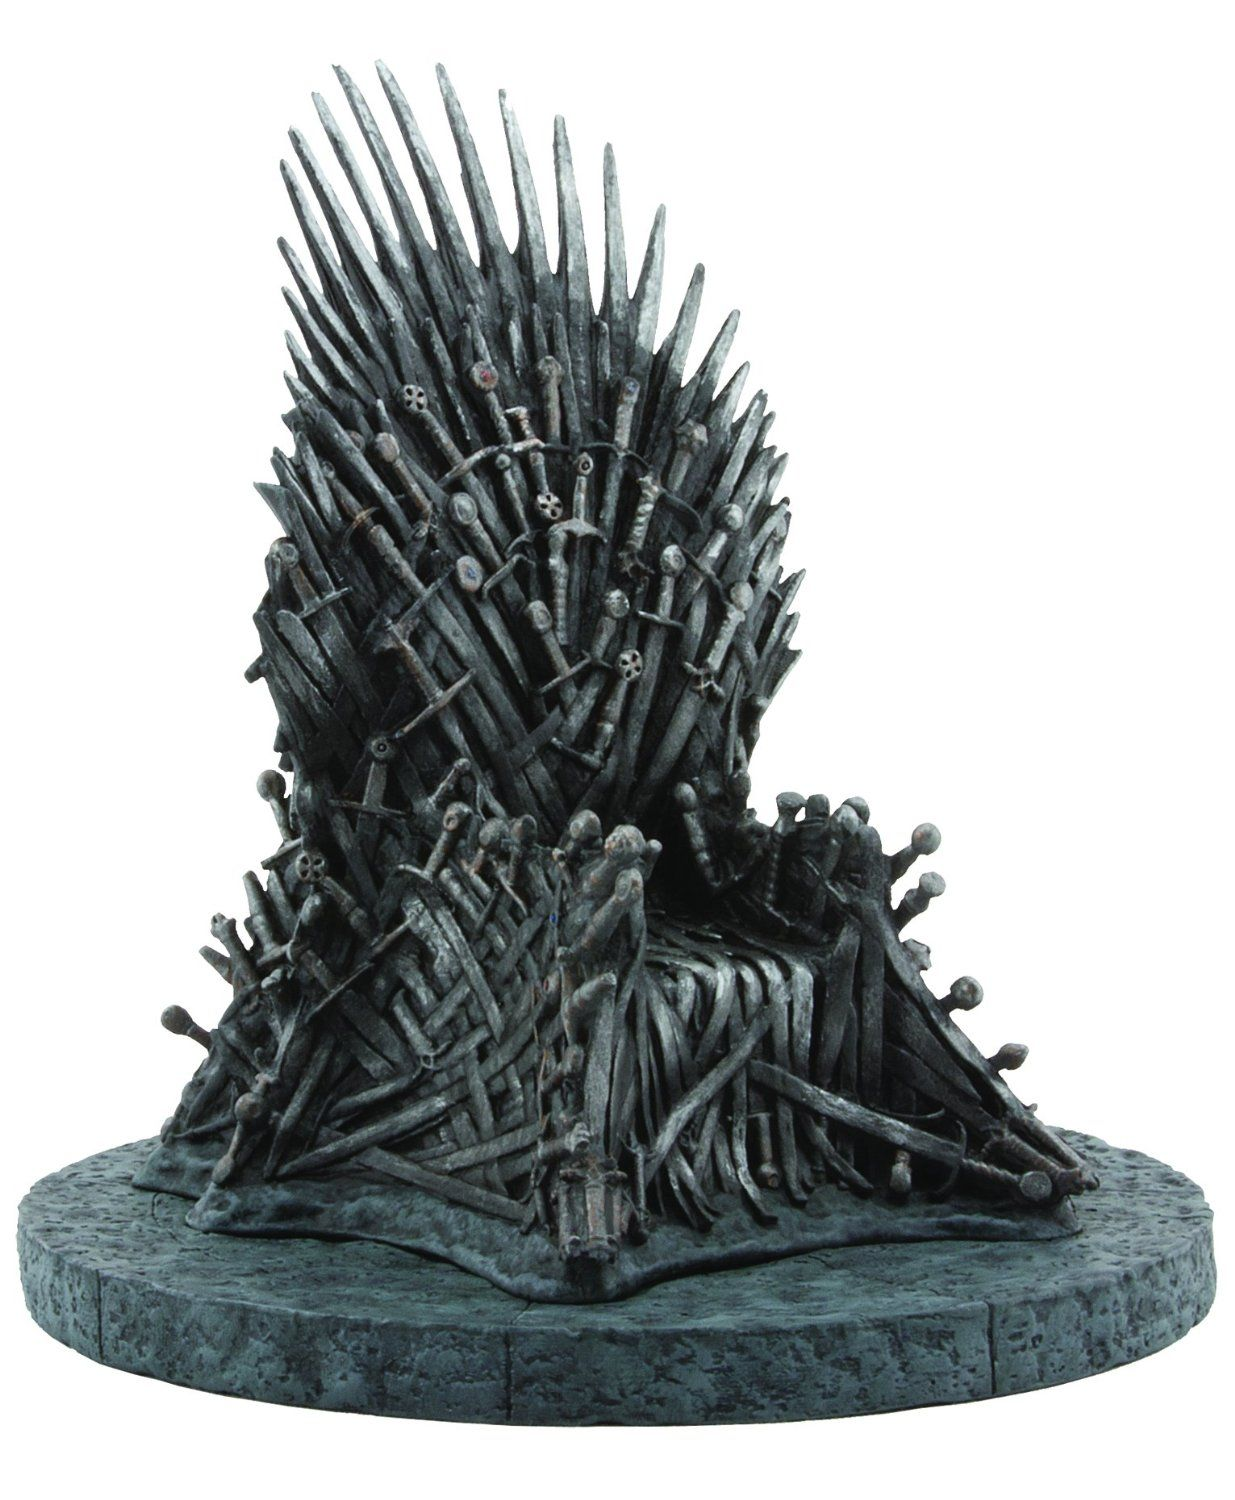 Game of thrones chair cake - Amazon Com Game Of Thrones Iron Throne 7 Replica Accessory